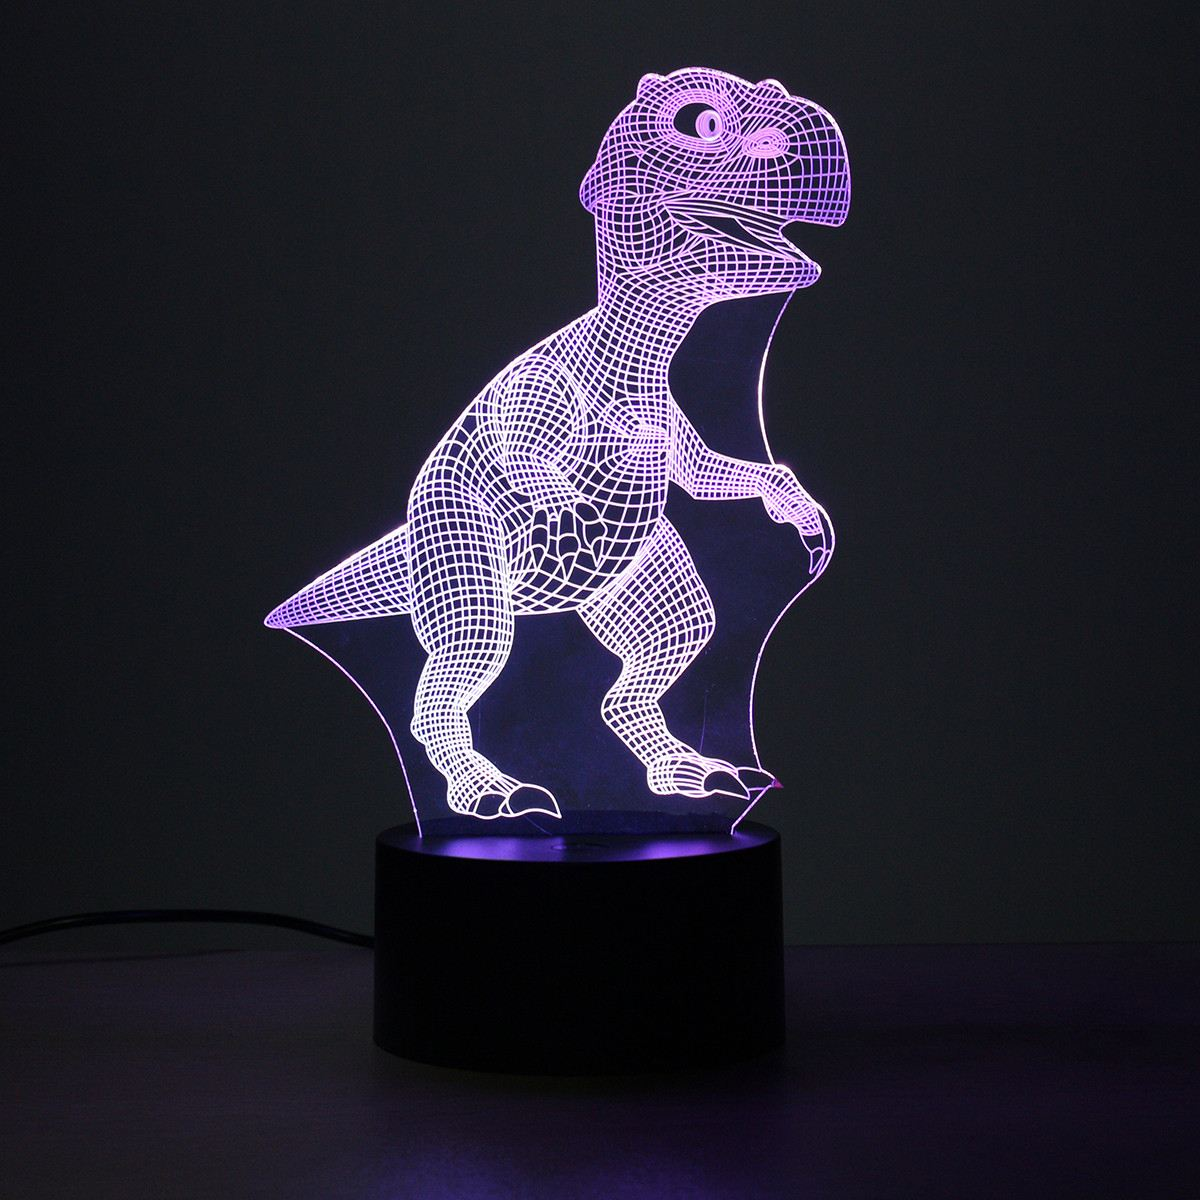 Colorful Dinosaur Shape 3D LED Night Light Button Switch Table Lamp For Christmas Party Gift Toy Bedroom Home Decor Lighting 3d christmas snowman shape touch colorful night light